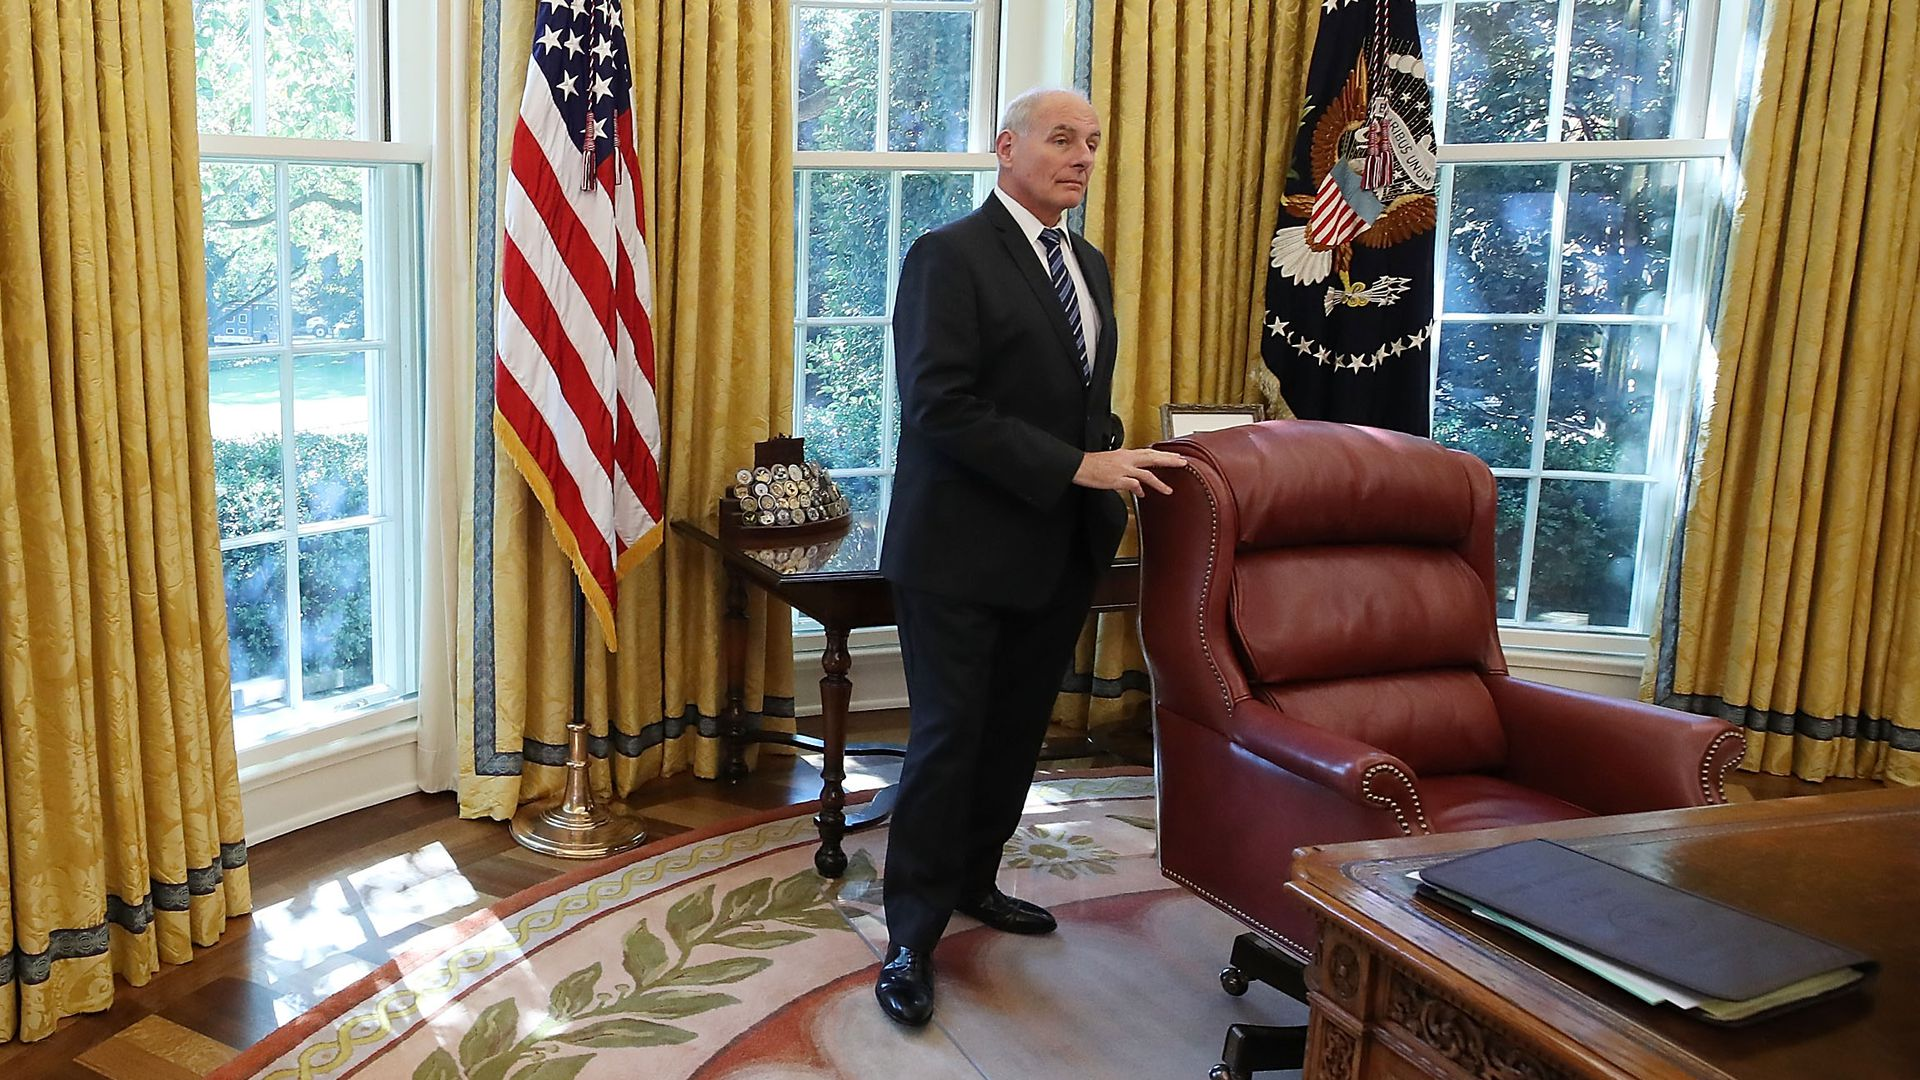 John Kelly stands behind the desk in the Oval Office